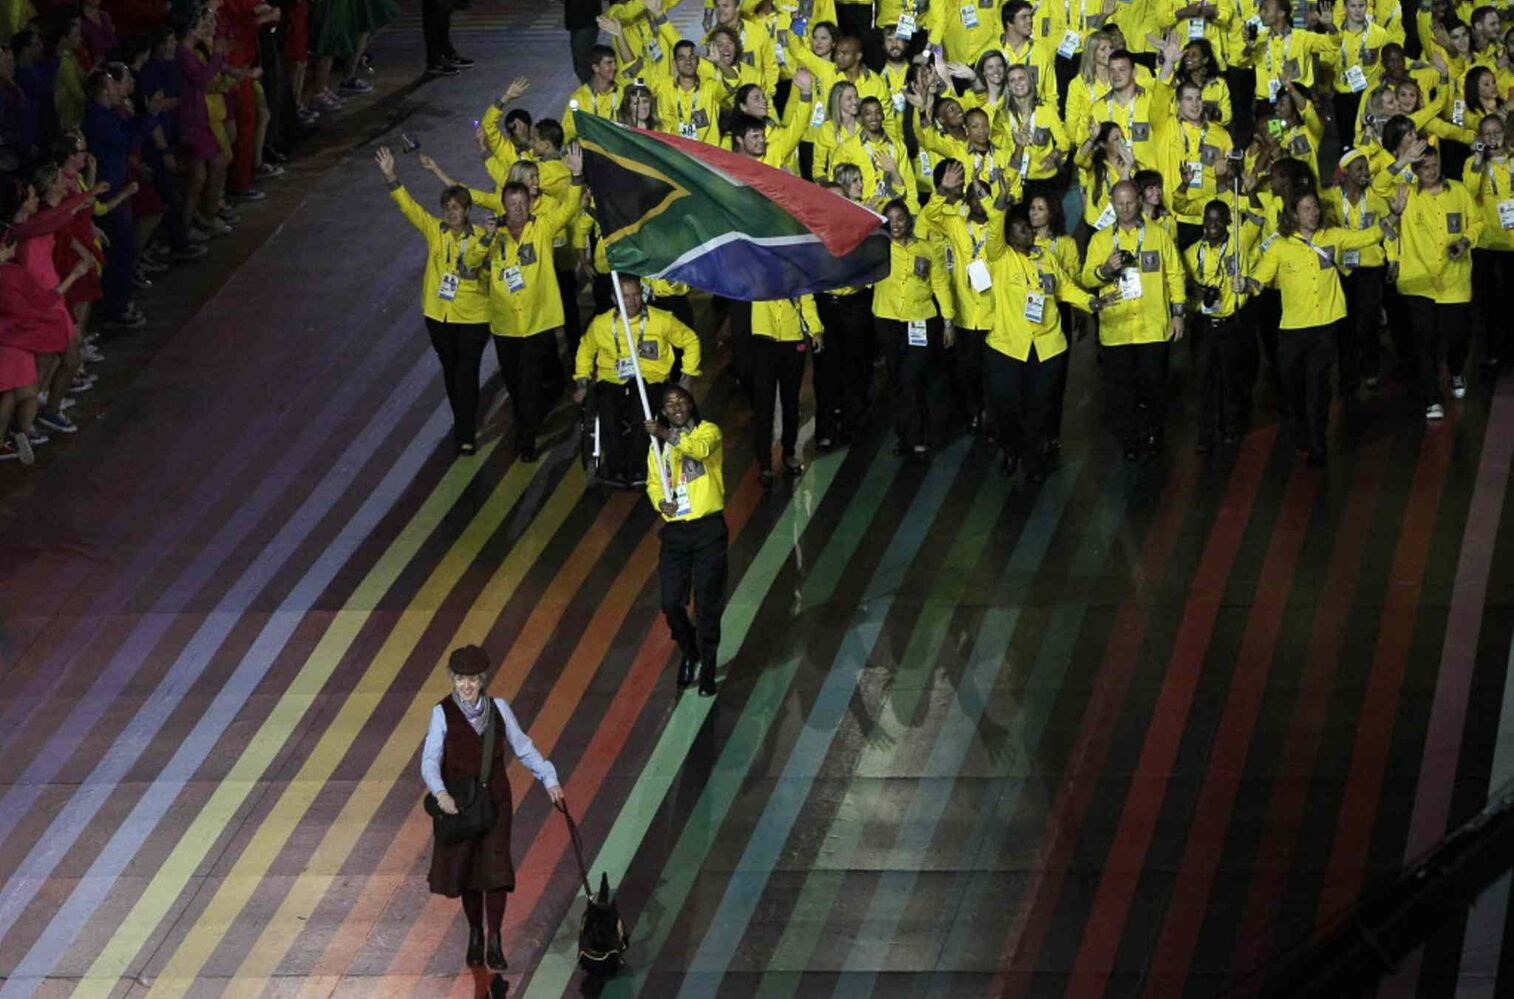 South Africa's flag bearer Cecil Sebastian Afrika leads the team during the opening ceremony for the Commonwealth Games 2014 in Glasgow, Scotland, Wednesday. (Kirsty Wigglesworth / The Associated Press)